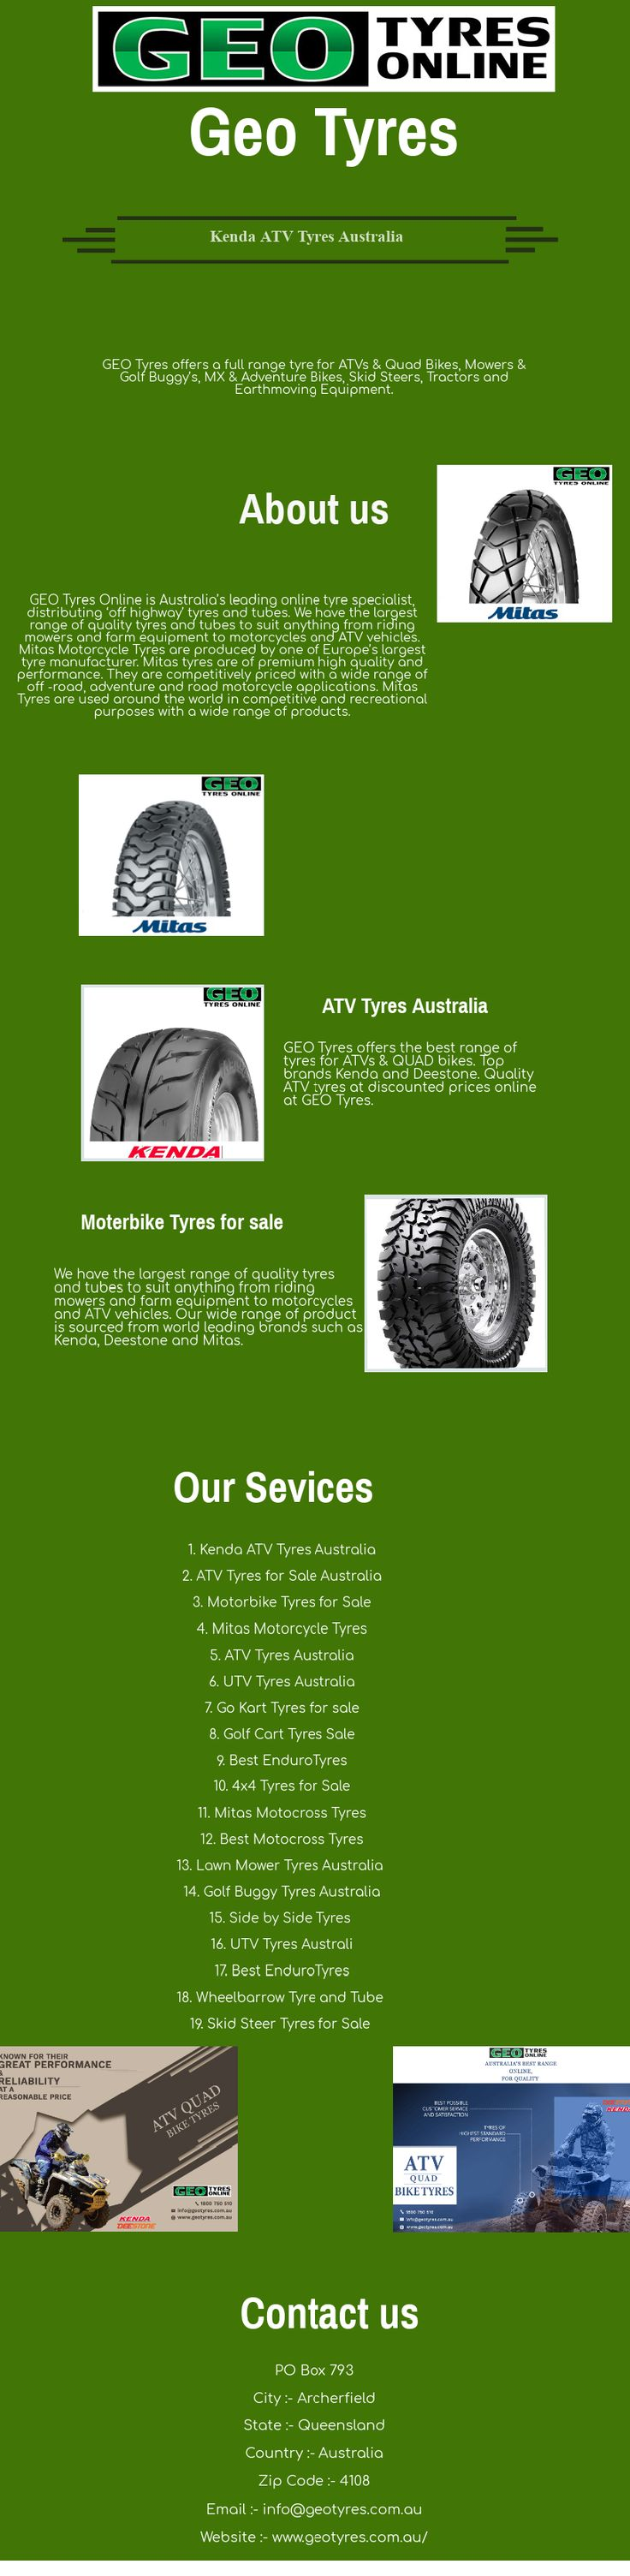 Need new #4WD #tyres? Choose from a range of 4WD & Off #Road Tyres online at #GEO #Tyres. All at bargain prices.